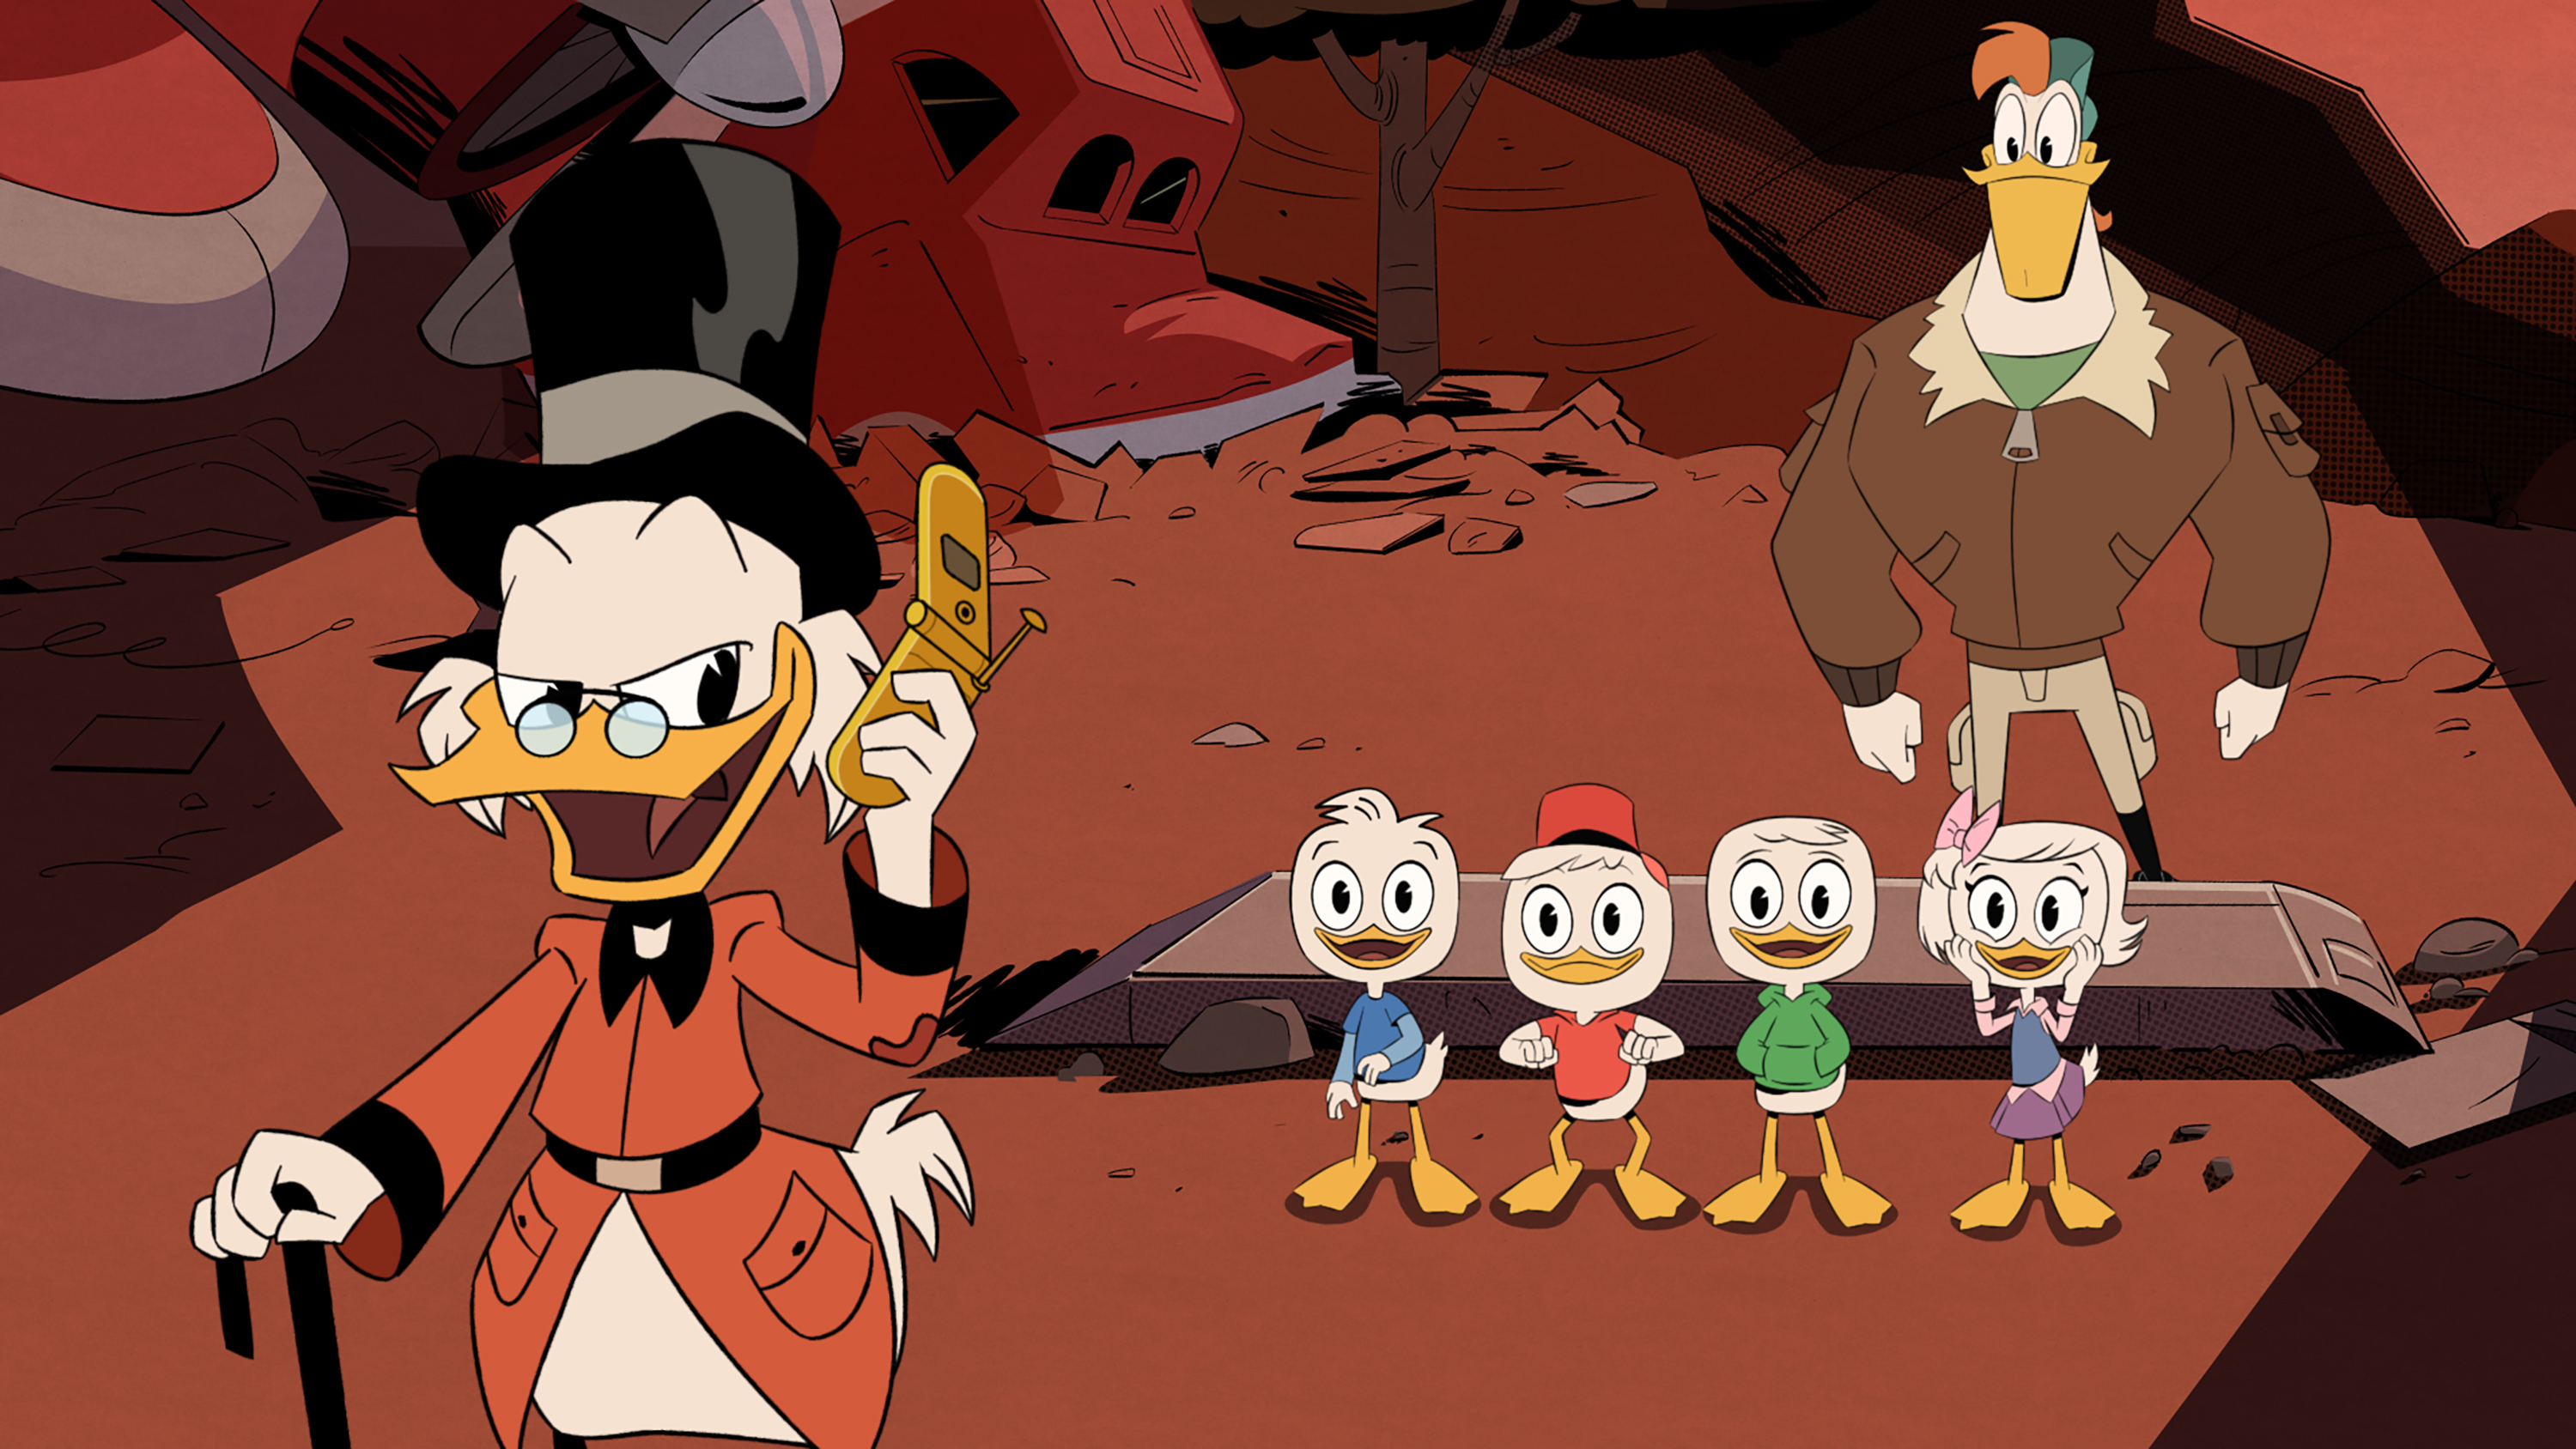 "DUCKTALES Ð ""Woo-oo!"" - Donald Duck reluctantly takes his nephews Huey, Dewey and Louie to the home of their reclusive great-uncle Scrooge McDuck. Enthralled by their once legendary great-uncle and the wonder of McDuck Manor, the triplets and their newfound fierce friend Webby learn of long-kept family secrets and unleash totems from ScroogeÕs epic past, sending the family on an adventure of a lifetime to the Lost City of Atlantis. ""DuckTales"" premieres in a one-hour television movie to be presented for 24 consecutive hours, SATURDAY, AUGUST 12 (beginning at midnight EDT/PDT), on Disney XD. (Disney XD) SCROOGE MCDUCK, DEWEY, HUEY, LOUIE, WEBBY VANDERQUACK, LAUNCHPAD MCQUACK"